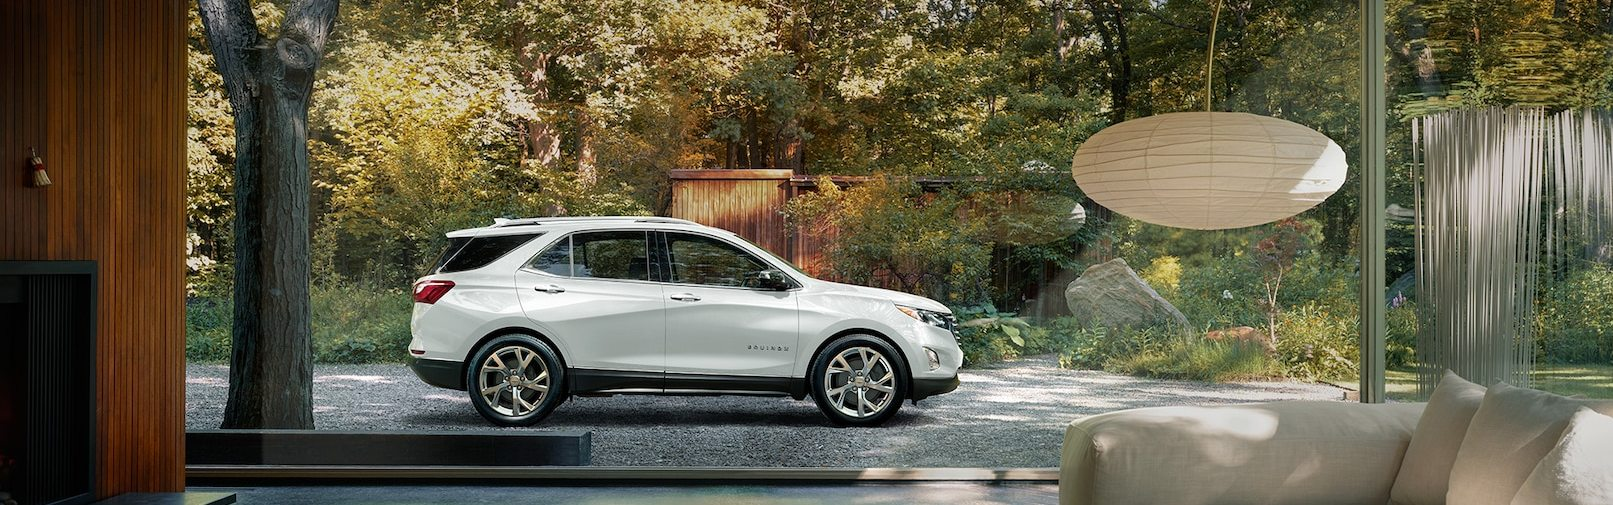 Used Chevrolet Equinox for Sale near North Bay, ON